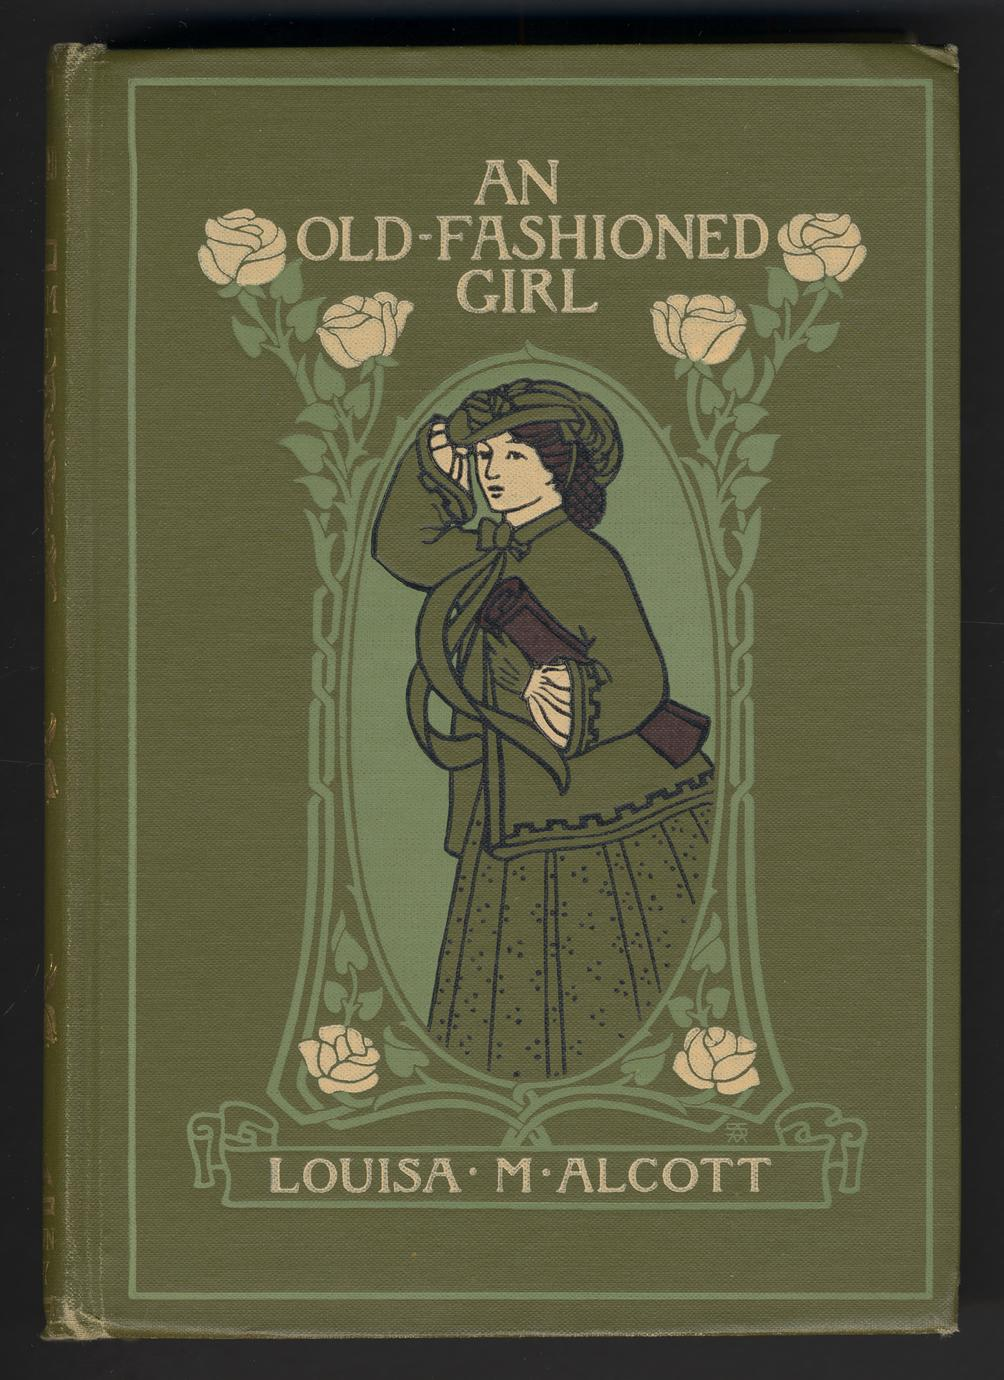 An old-fashioned girl (1 of 5)